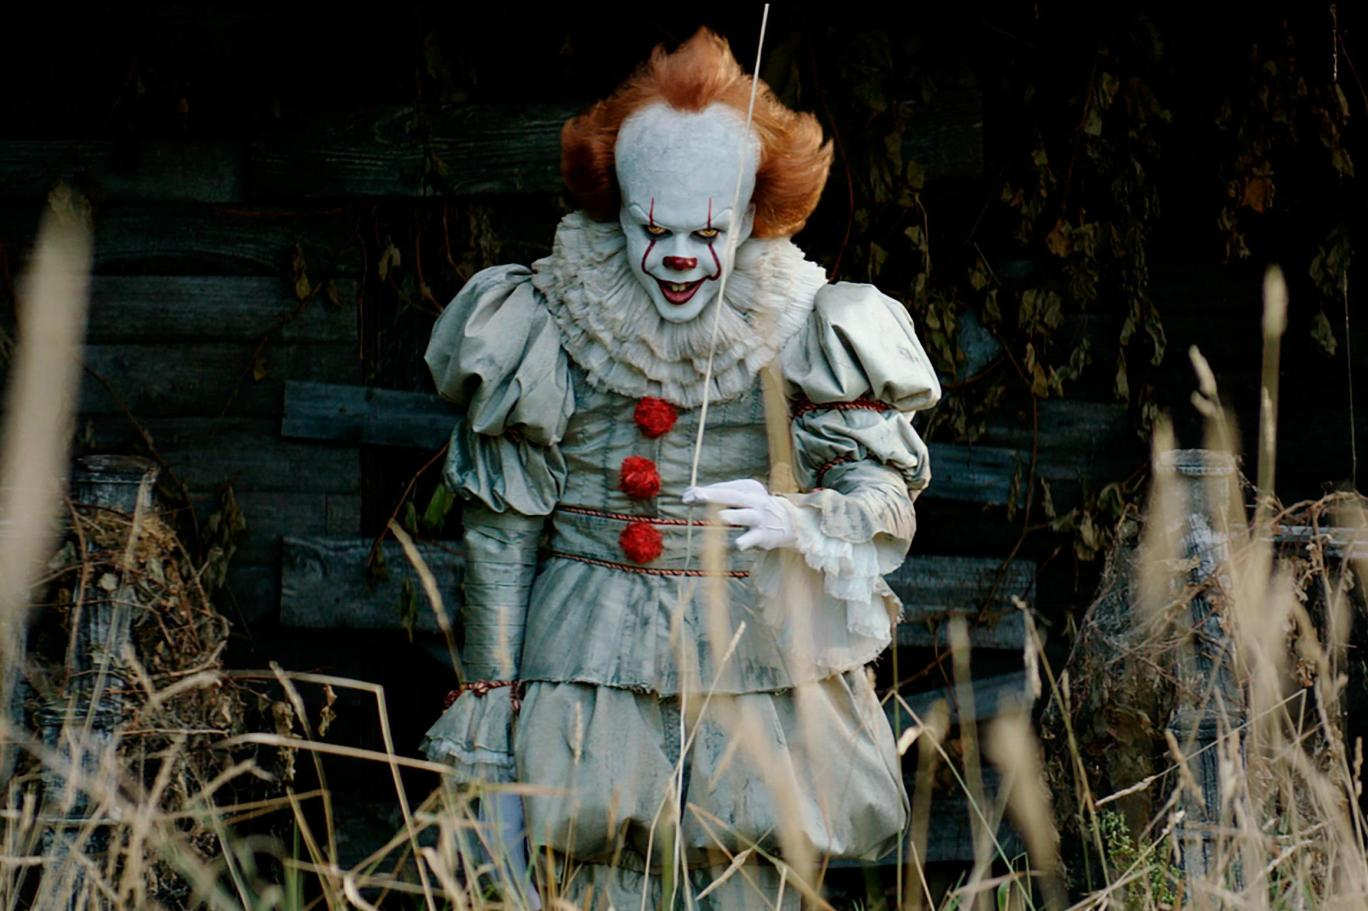 Burger King Russia Demands 'It' Ban, Saying Clown Looks Like Ronald McDonald